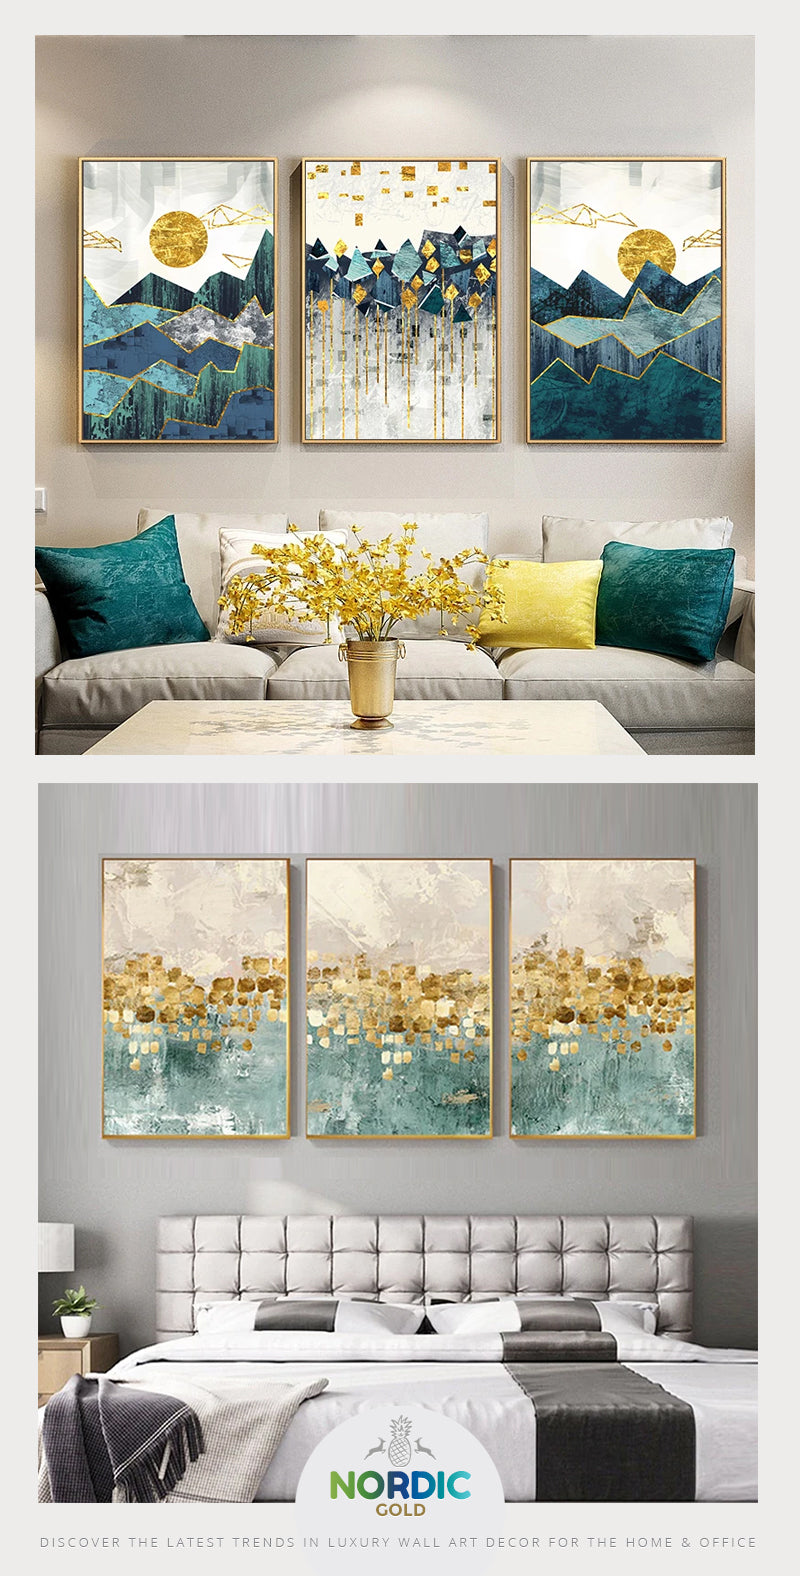 Luxury Nordic Gold - Contemporary Wall Art Decor